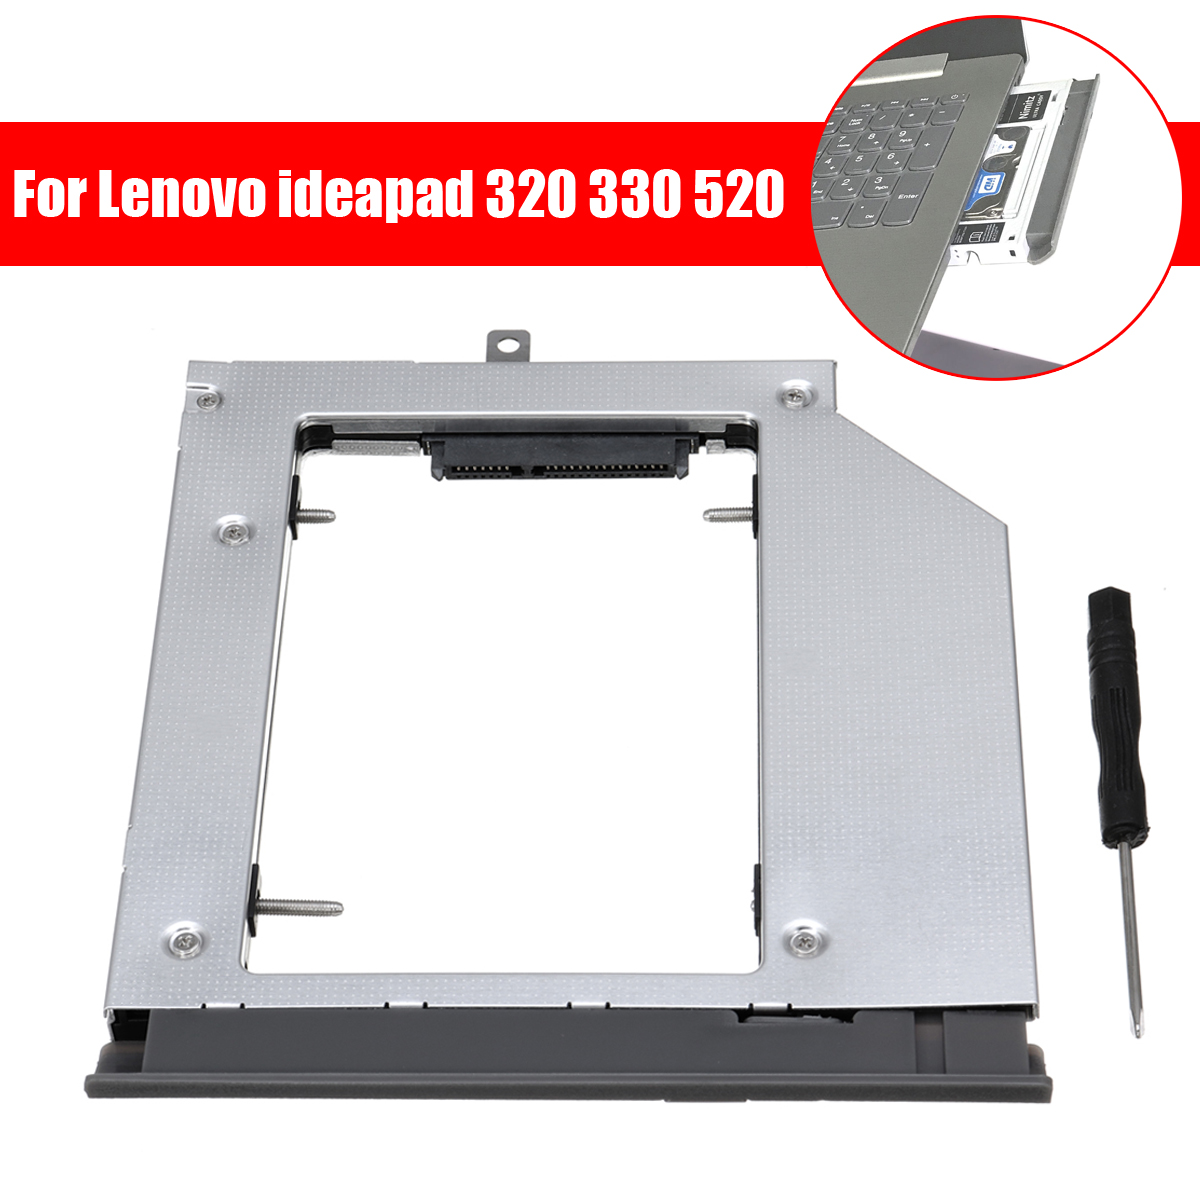 Notebook Hard Disk Drive 2nd HDD SSD Hard Drive Caddy For Lenovo ideapad 320 330 520 with Screwdriver